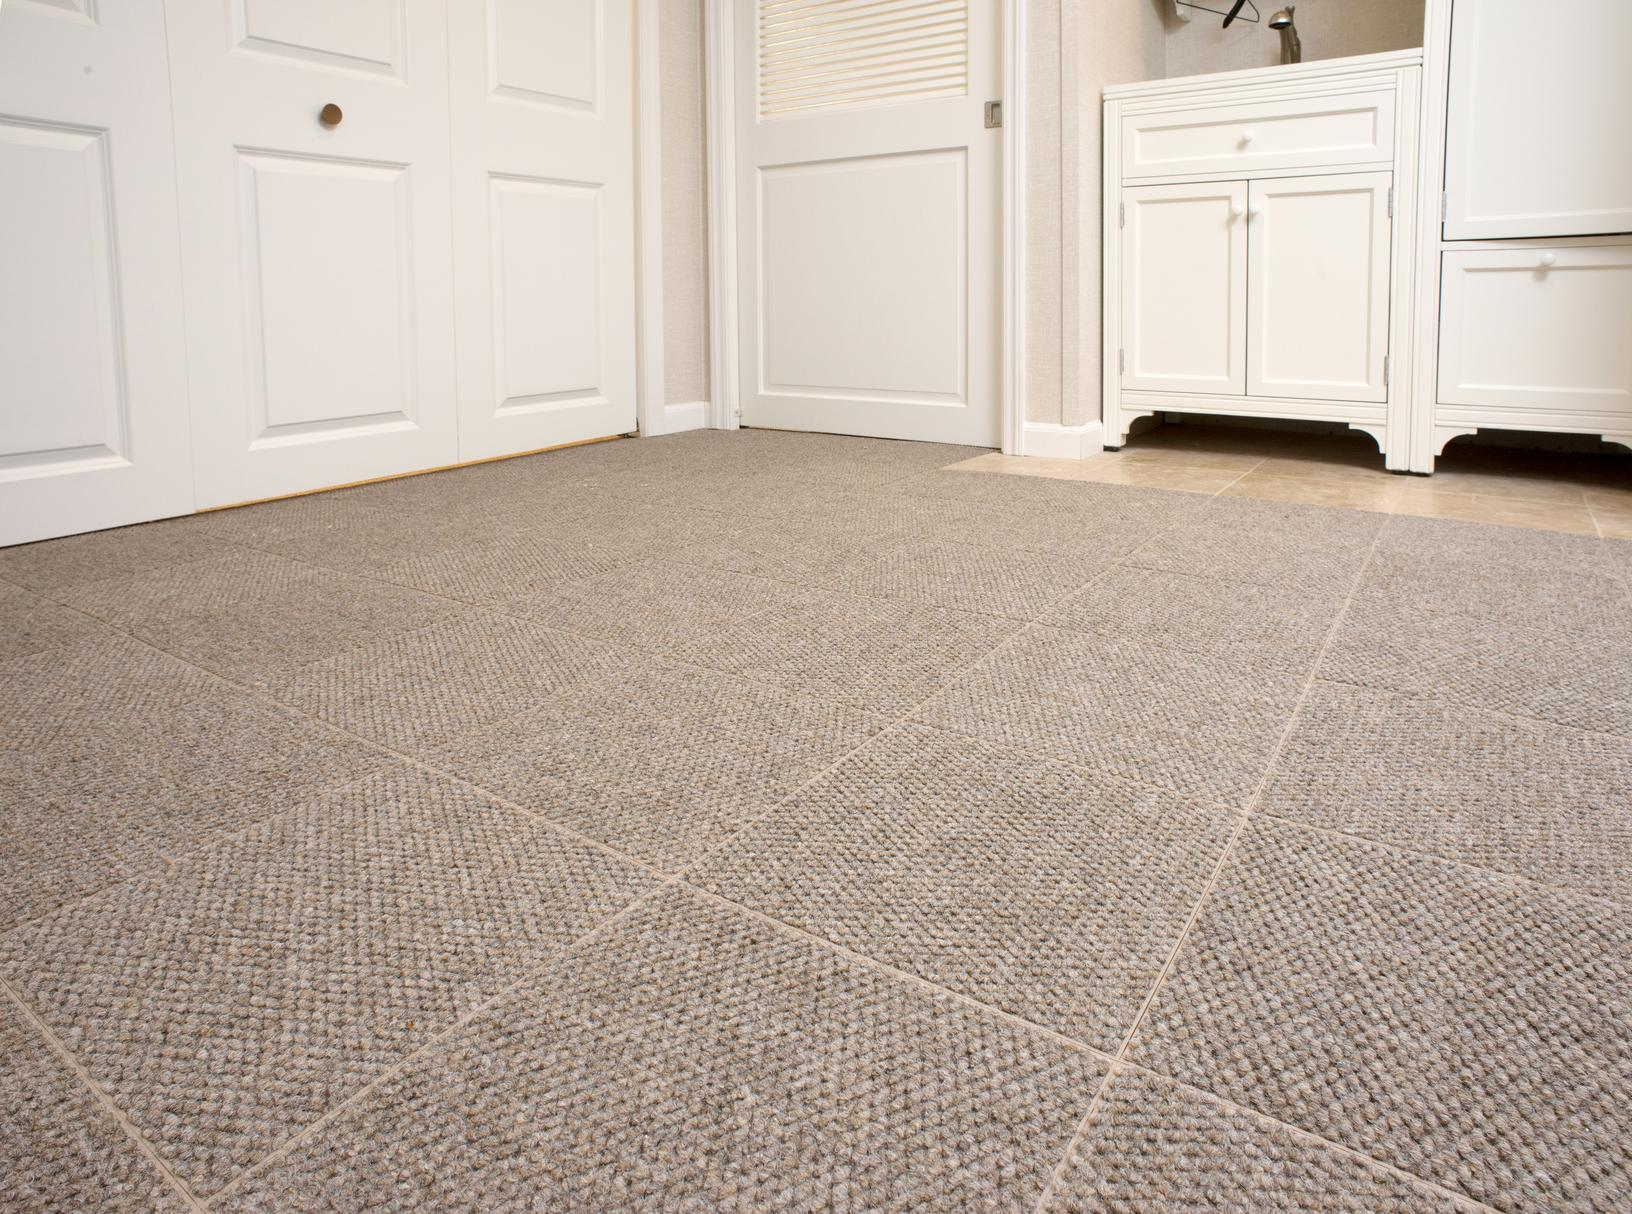 Basement subfloor matting and basement carpeting in Pennsylvania